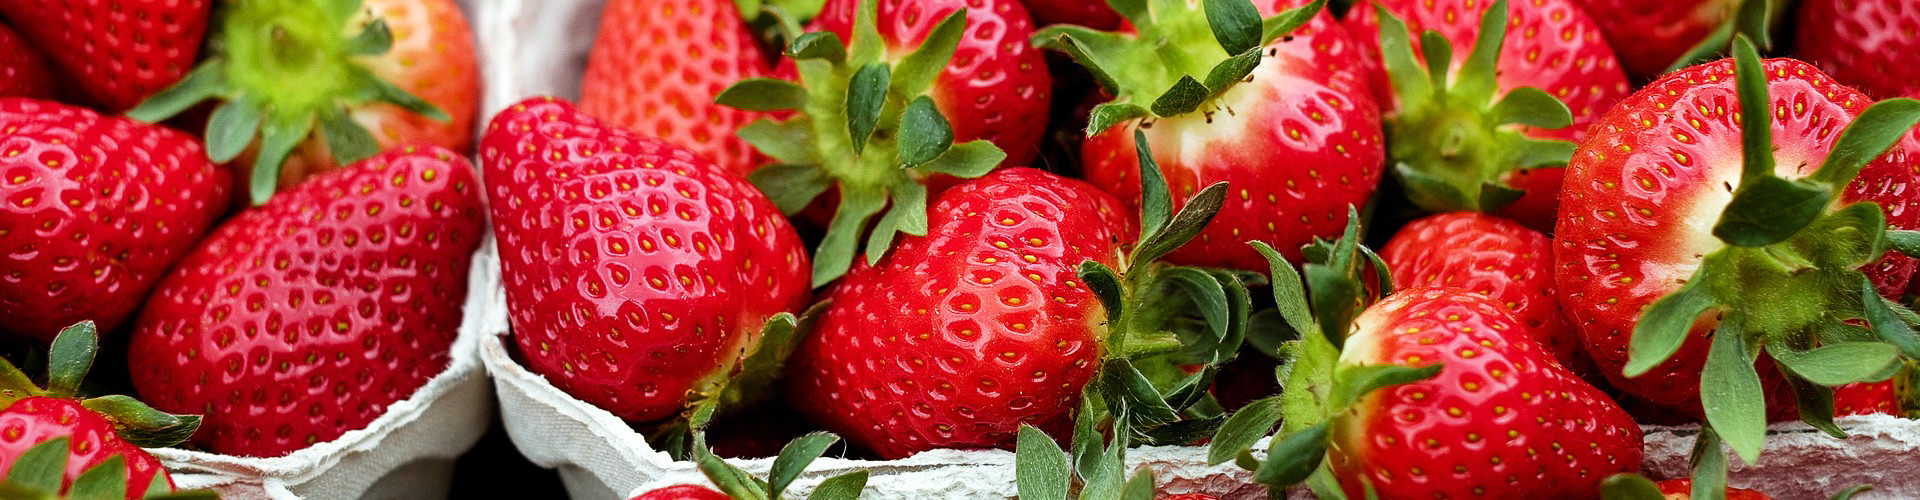 Strawberries local fresh produce Great Western Tiers